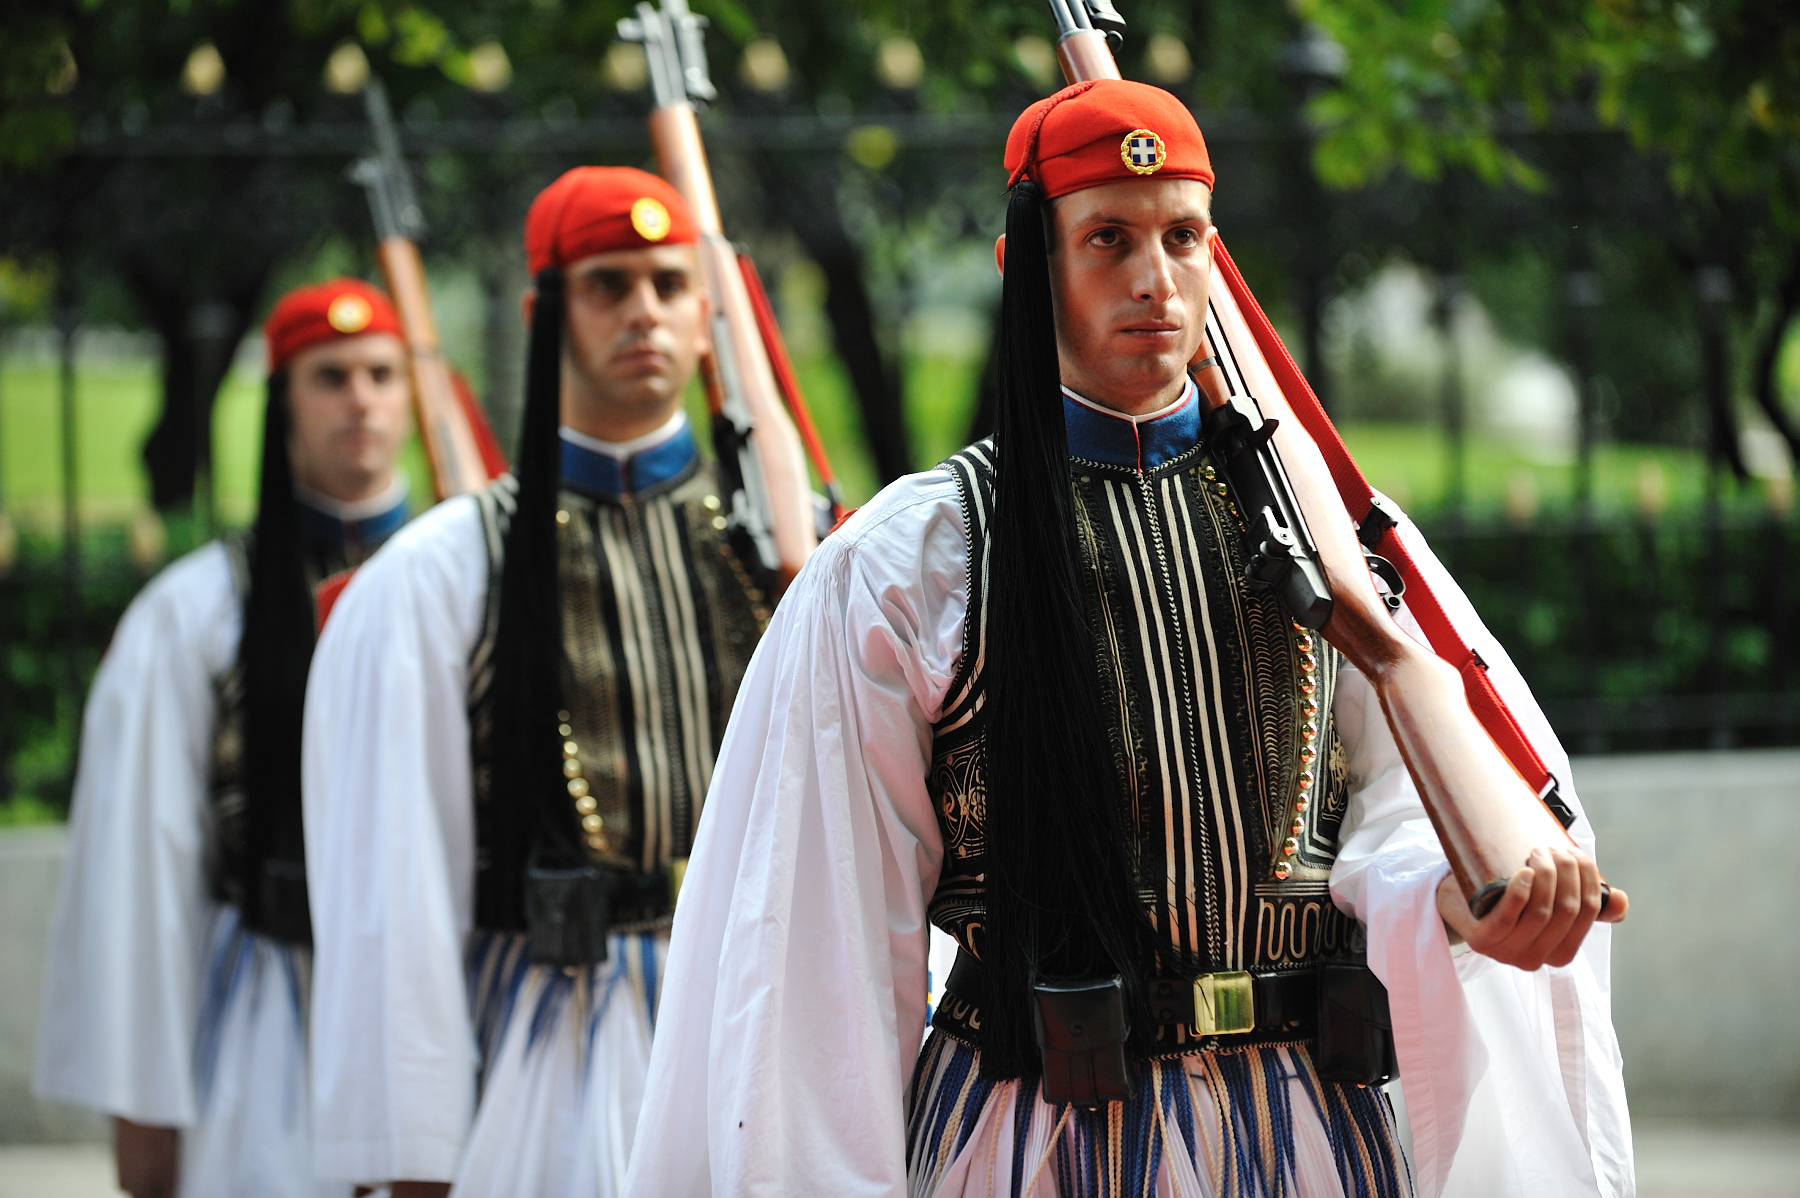 The Guard of Honour is composed of Greek Evzones. They wear their uniform with pride as a mark of respect to national tradition and in tribute to the heroes of the nation's fight for freedom and independence.